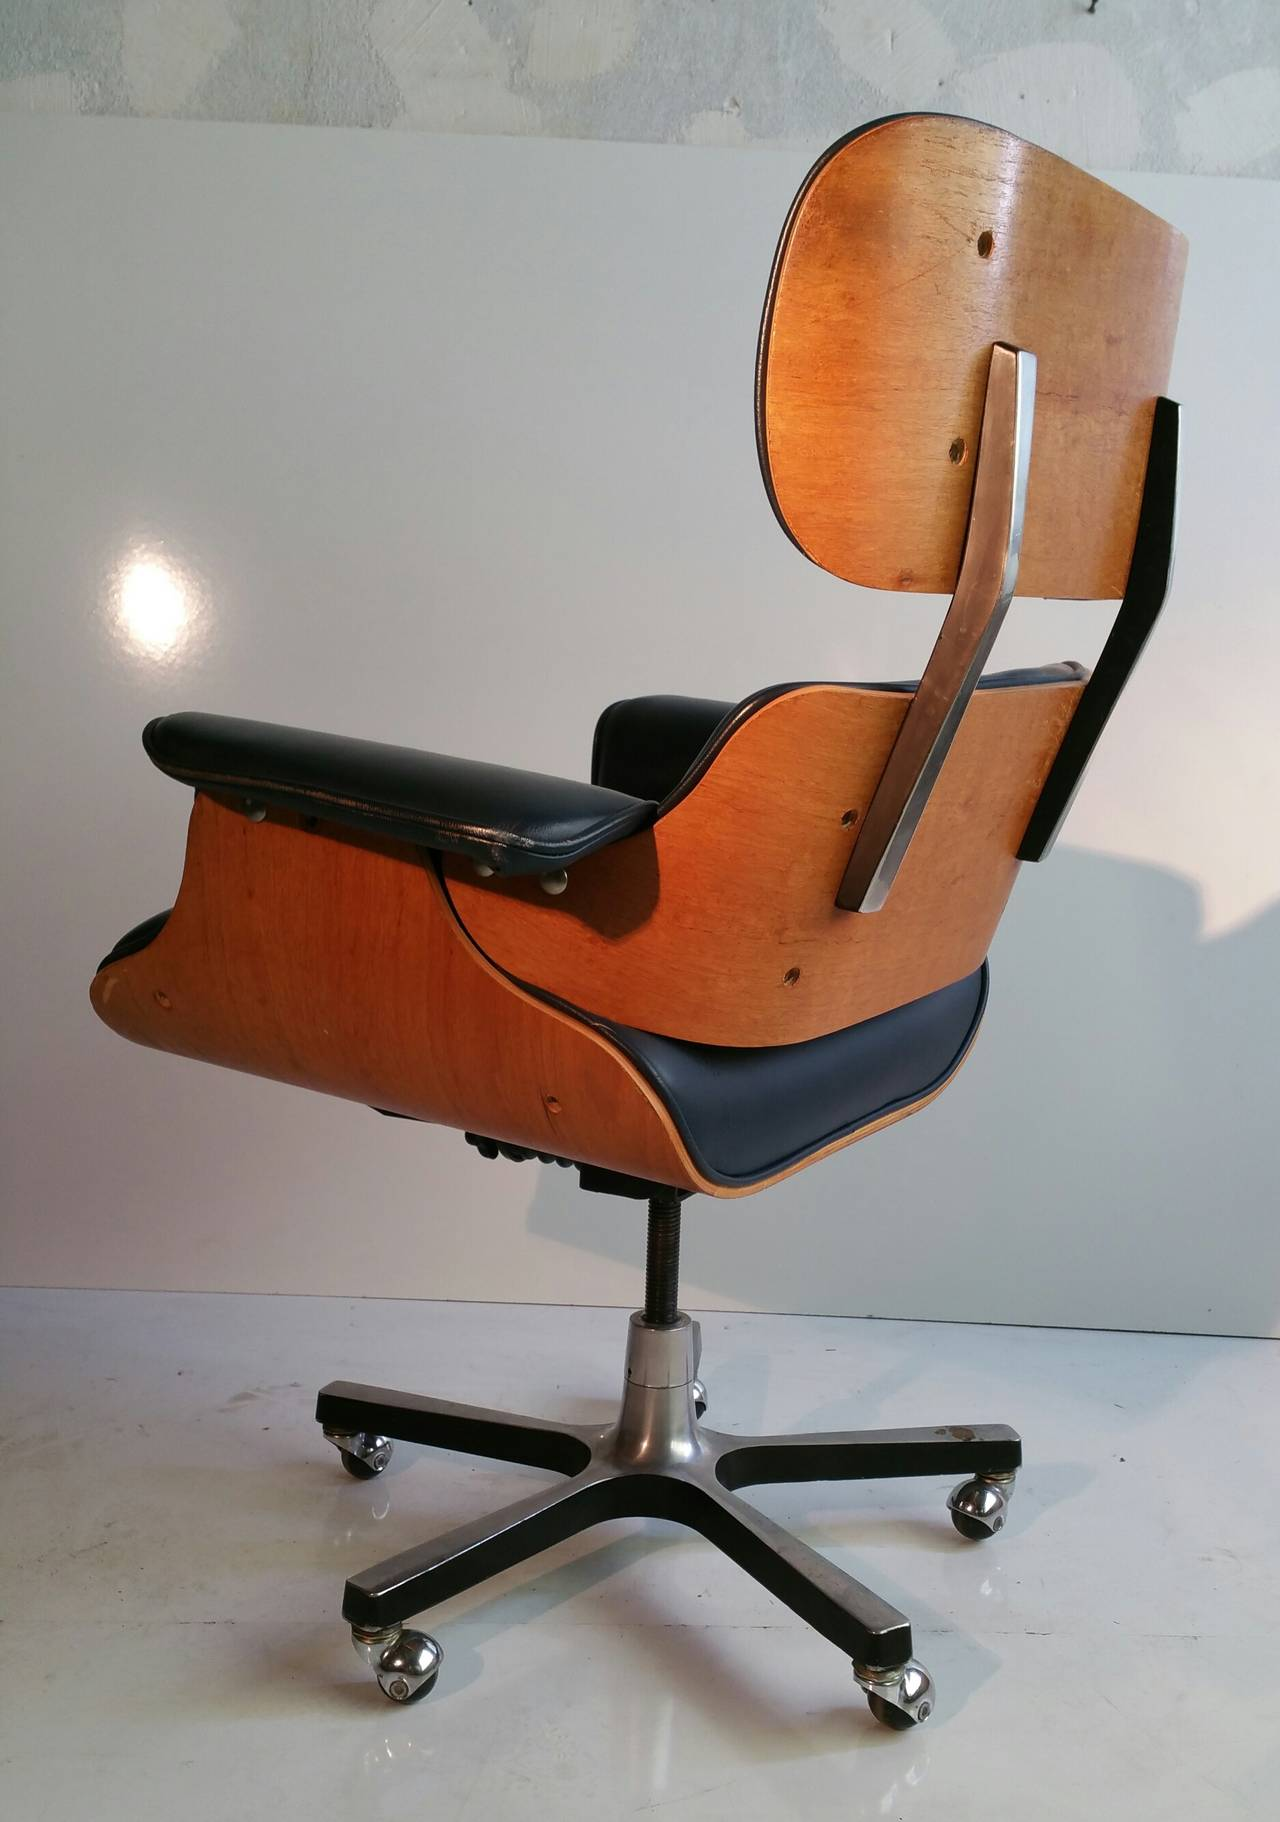 Eames Style Office Chair Dining Room Contemporary With: Modernist Eames Style Leather Desk Chair At 1stdibs